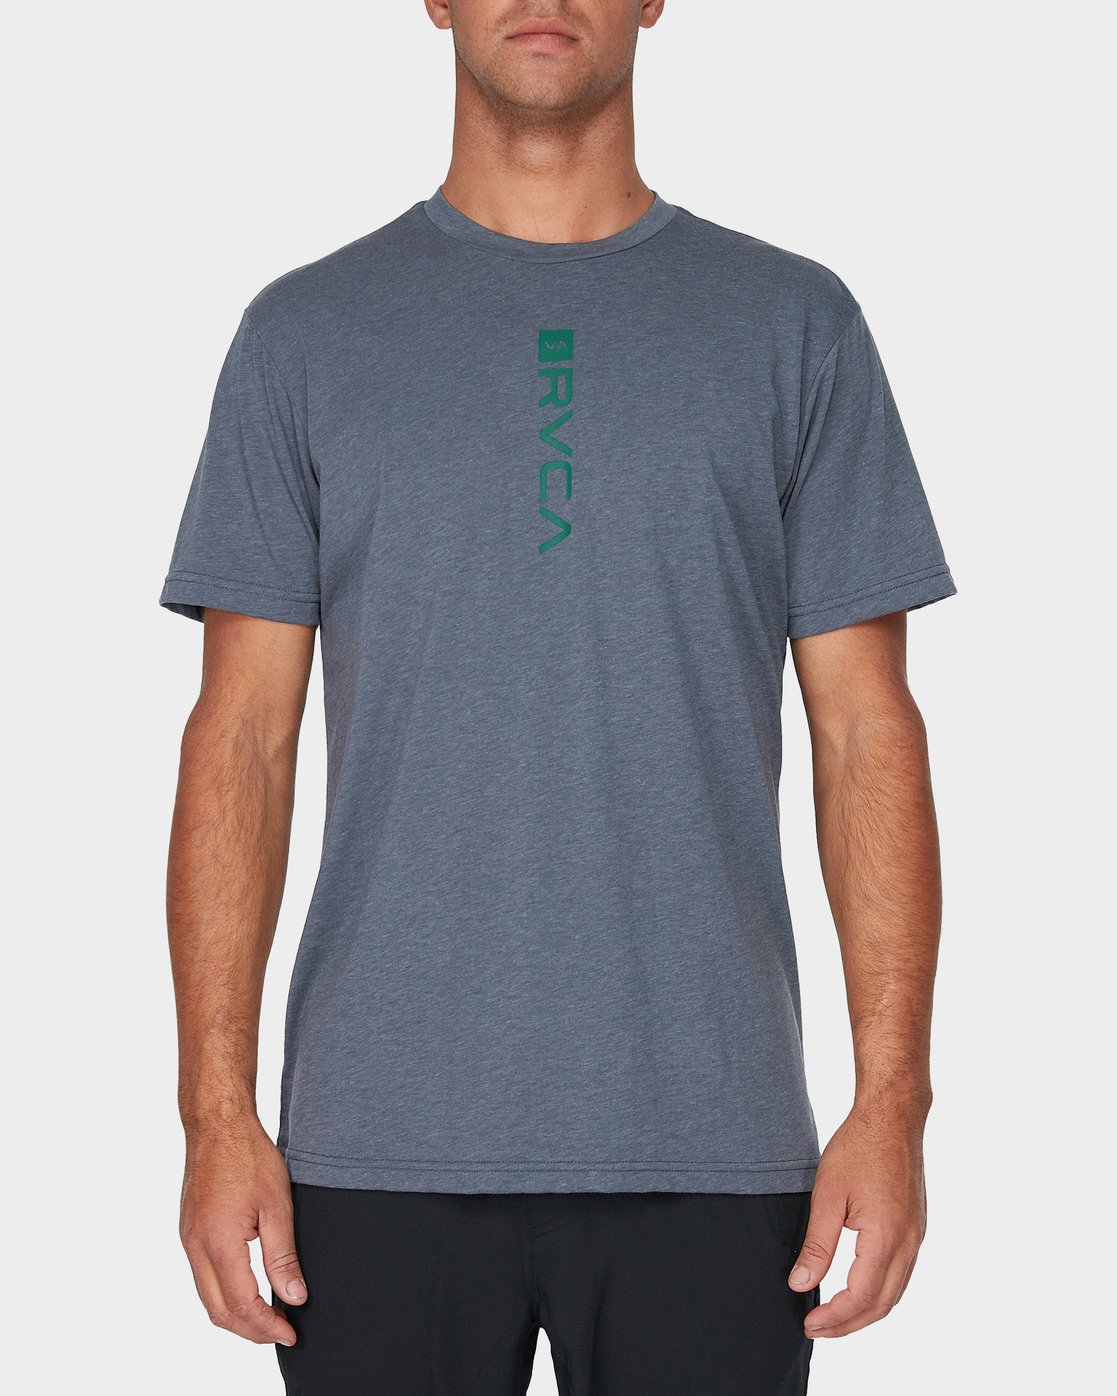 0 RVCA Verted Short Sleeve T-Shirt Grey R393052 RVCA